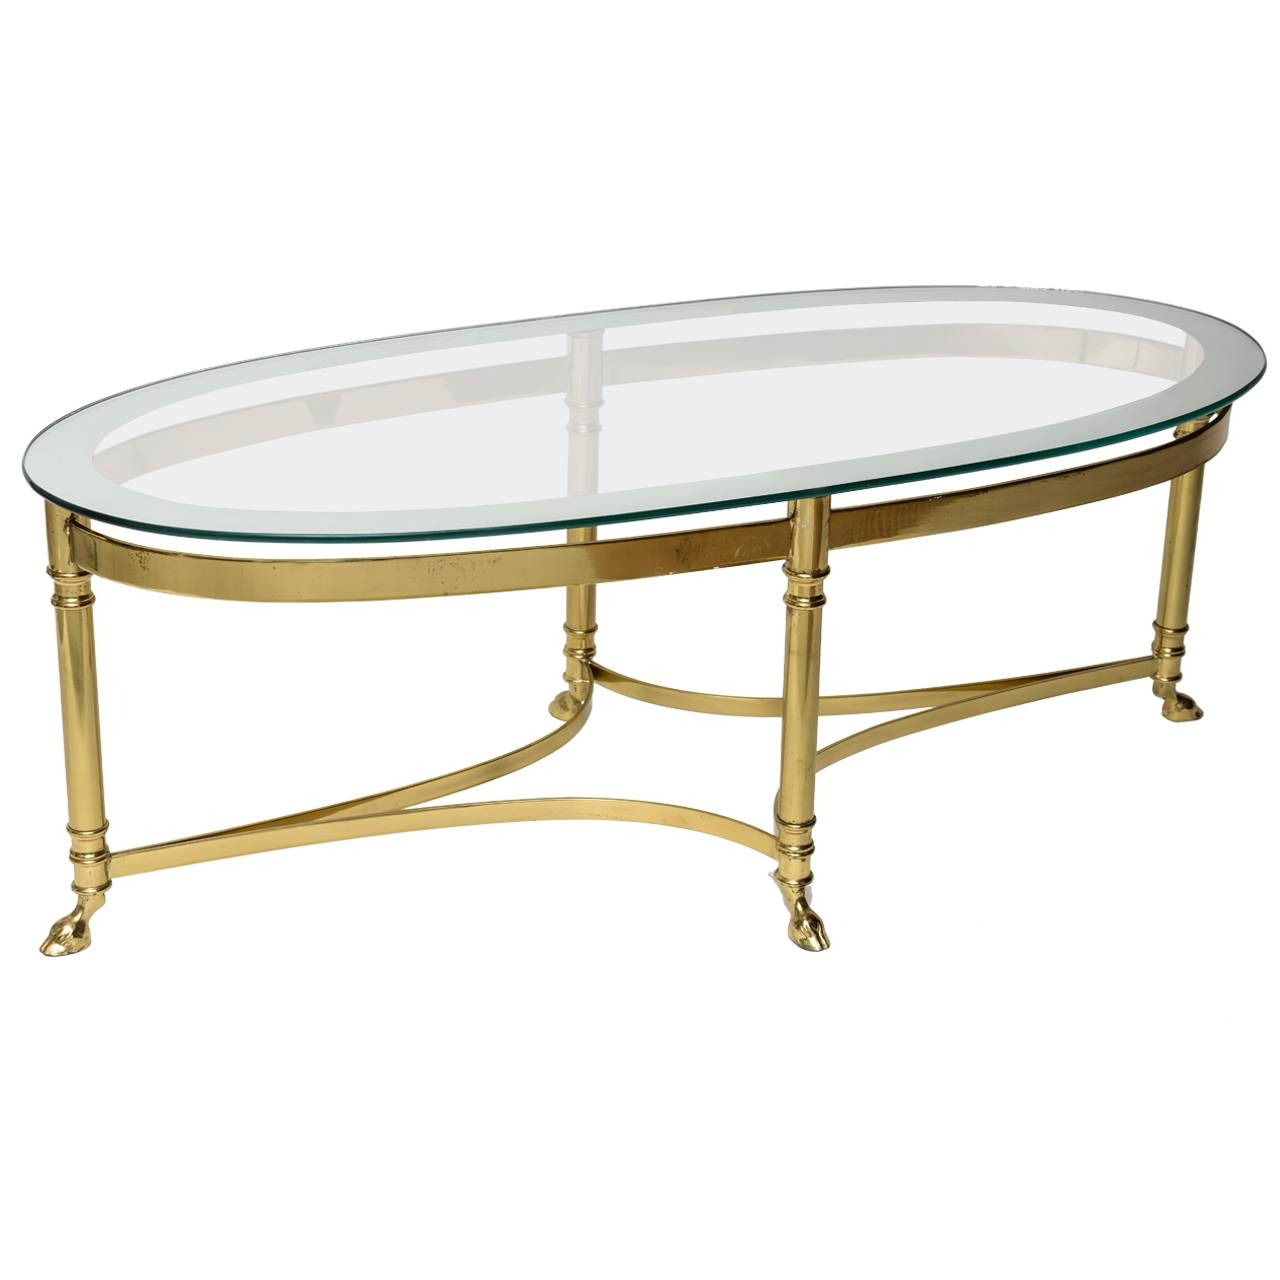 Coffee Table: Latest Coffee Table Glass Top Ideas Coffee Tables with regard to Vintage Glass Coffee Tables (Image 6 of 30)